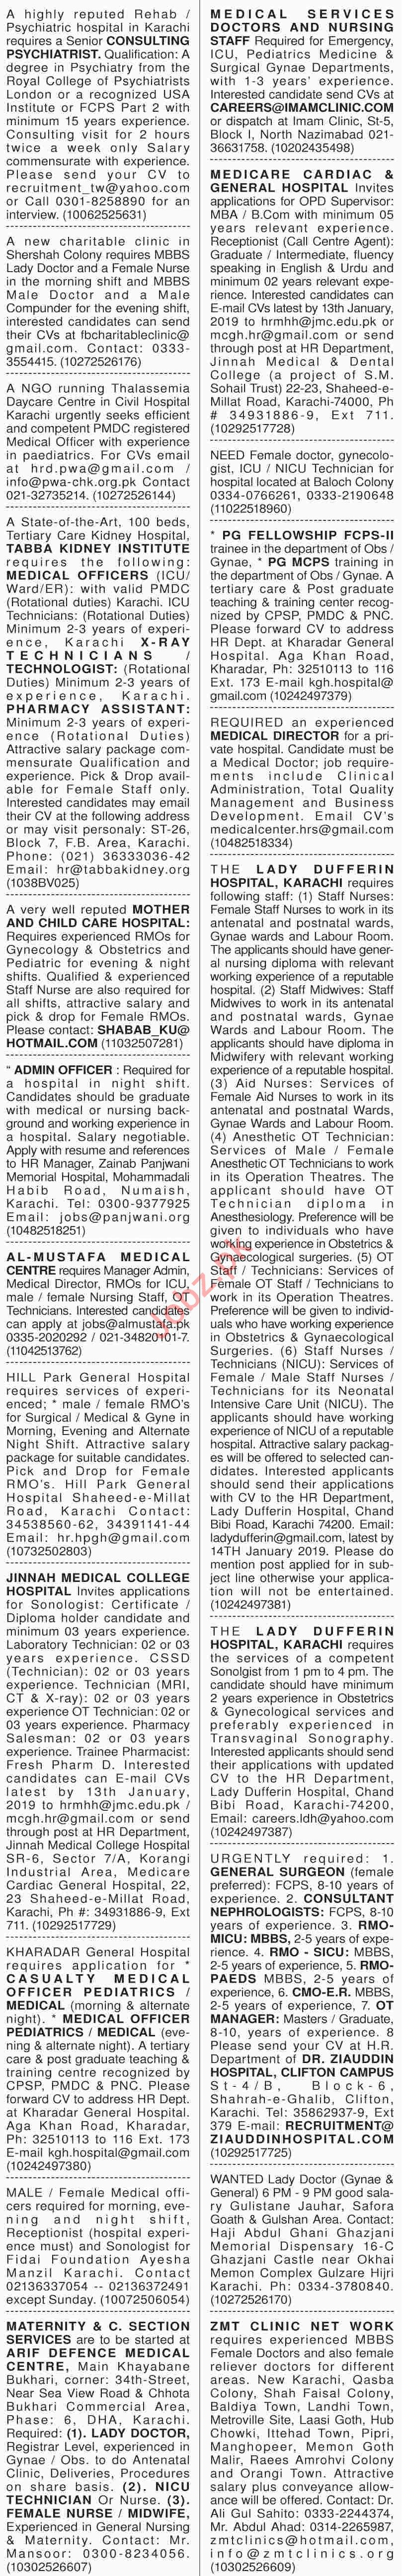 Dawn Sunday Classified Ads 6th Jan 2019 for Medical Staff